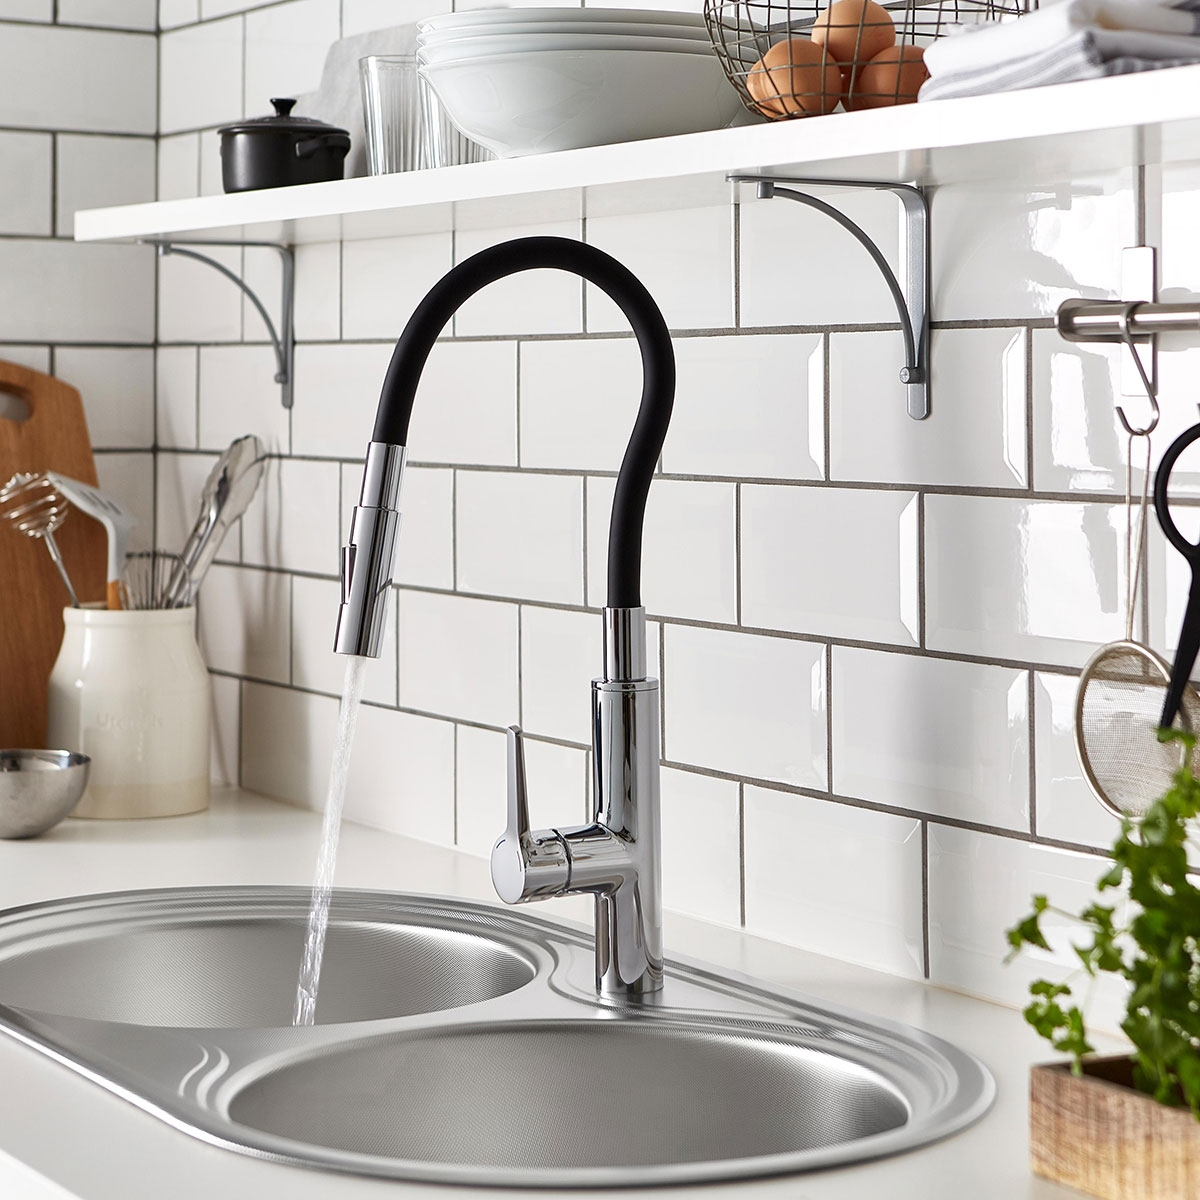 Bristan Gallery Flex Kitchen Sink Mixer Tap Single Handle - Grey/Chrome